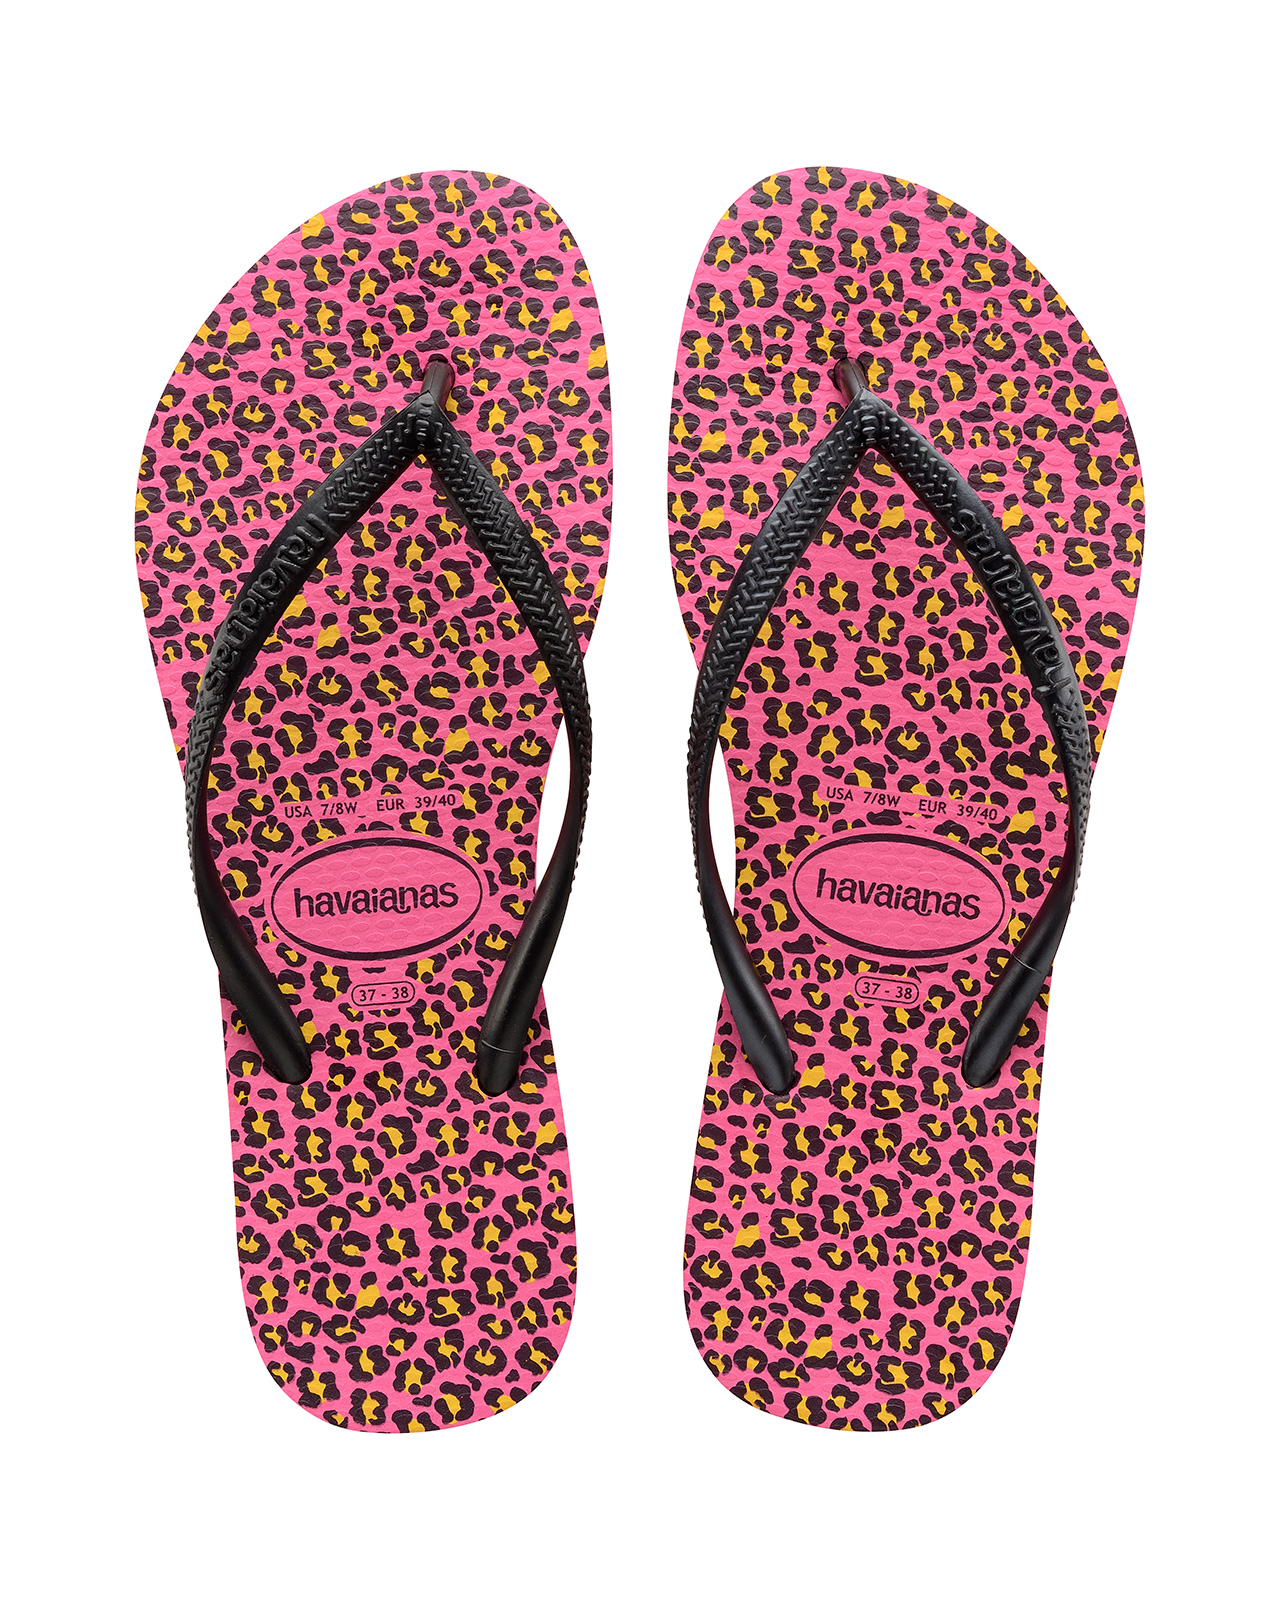 Flip-Flops Flip-flops - Havaianas Slim Animals Shocking Pink 09939026d052